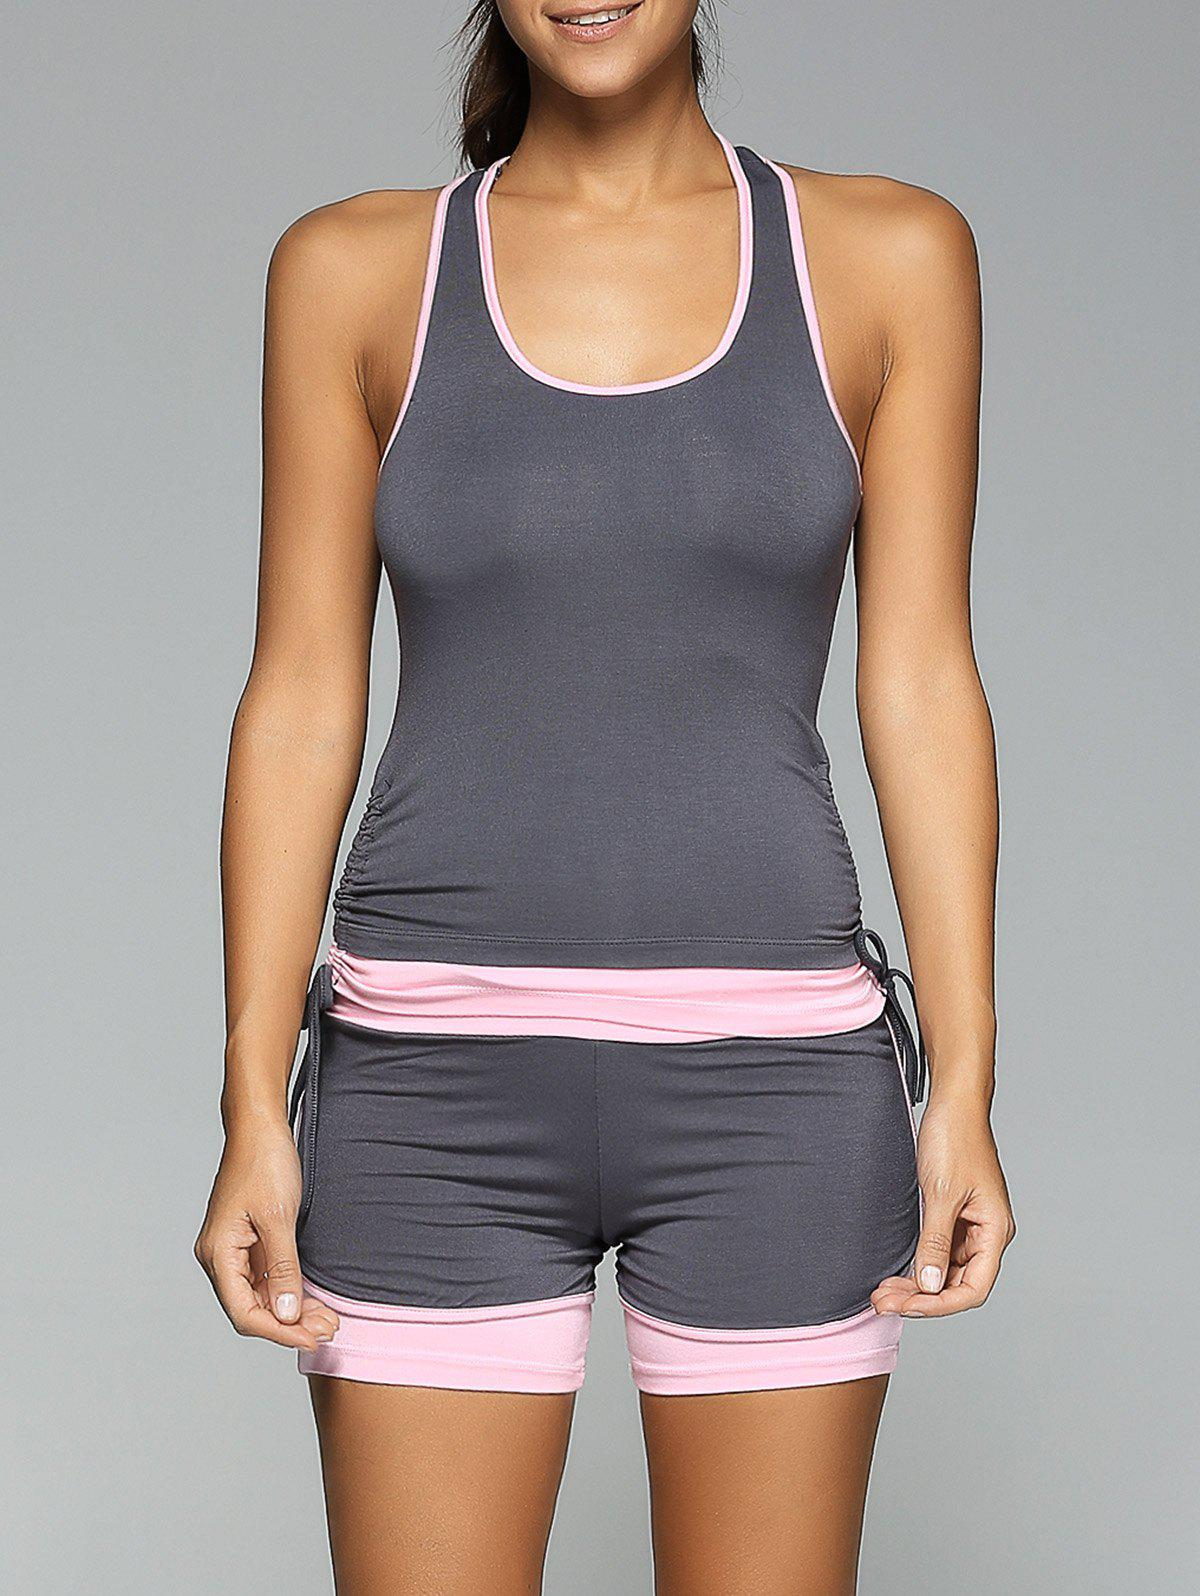 Store Racerback Side Drawstring Tank Top and Skinny Spliced Shorts Twinset